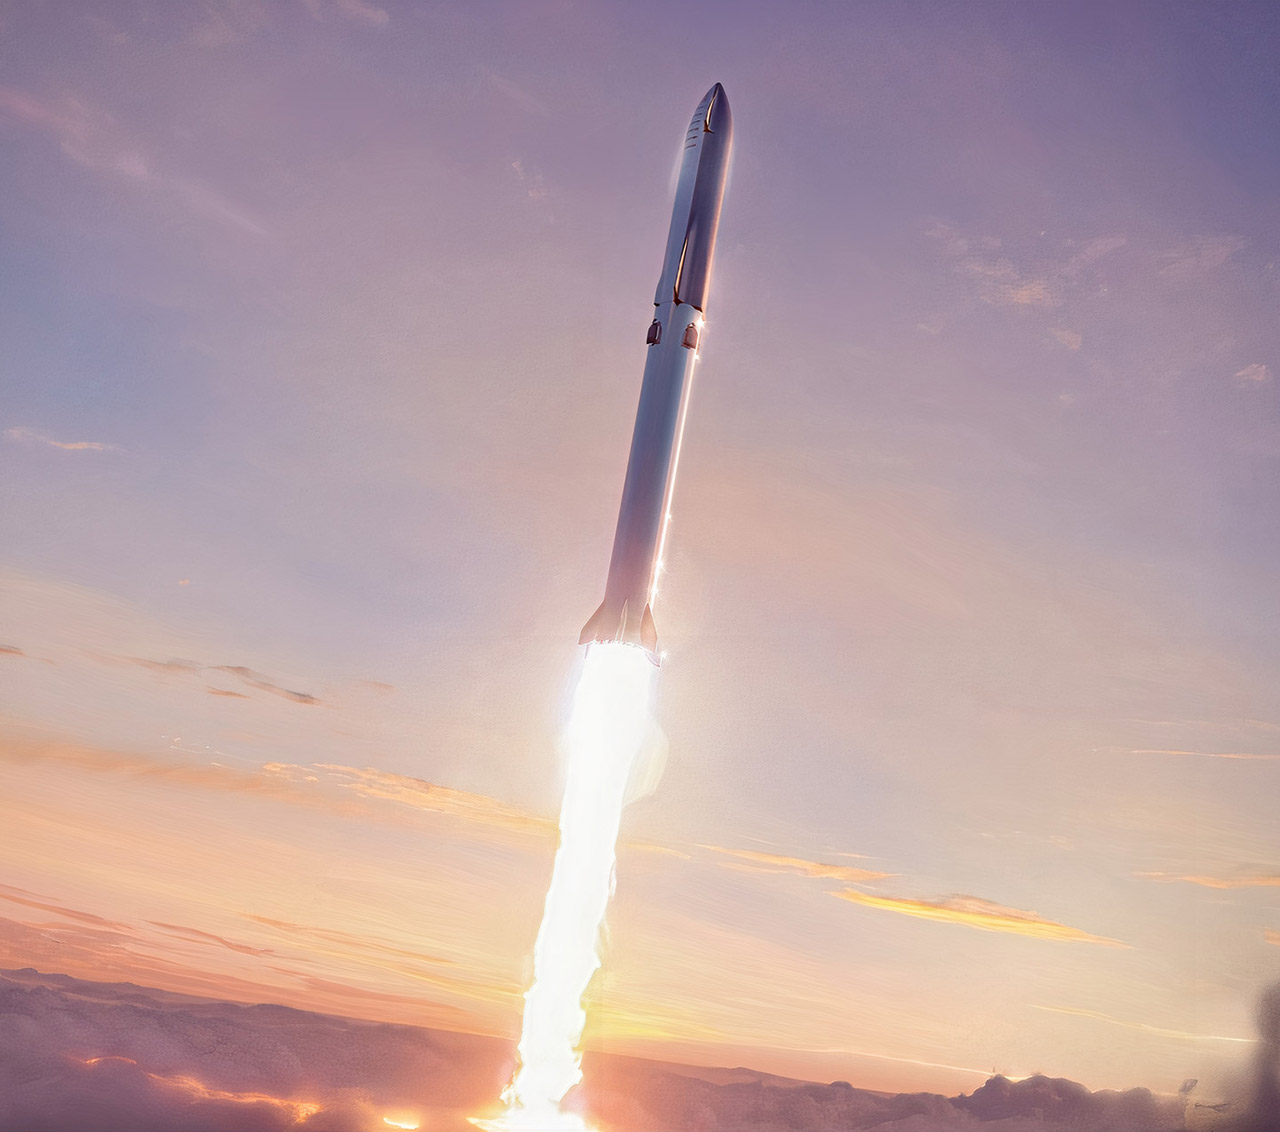 Elon Musk Catch SpaceX Rocket Booster